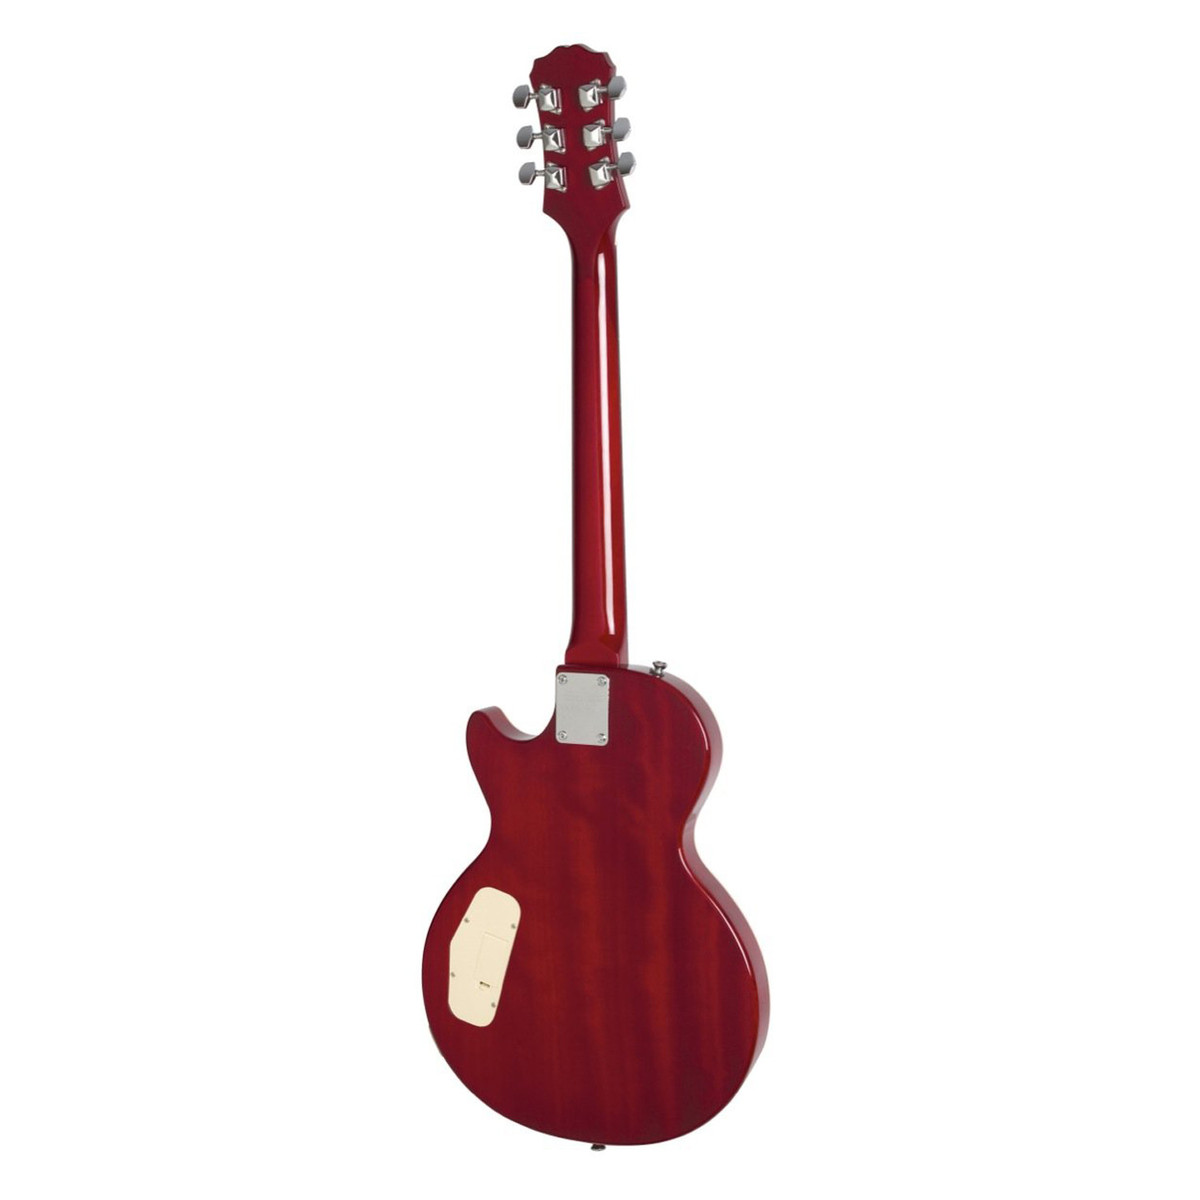 epiphone slash 39 afd 39 les paul special ii electric guitar outfit b stock at. Black Bedroom Furniture Sets. Home Design Ideas